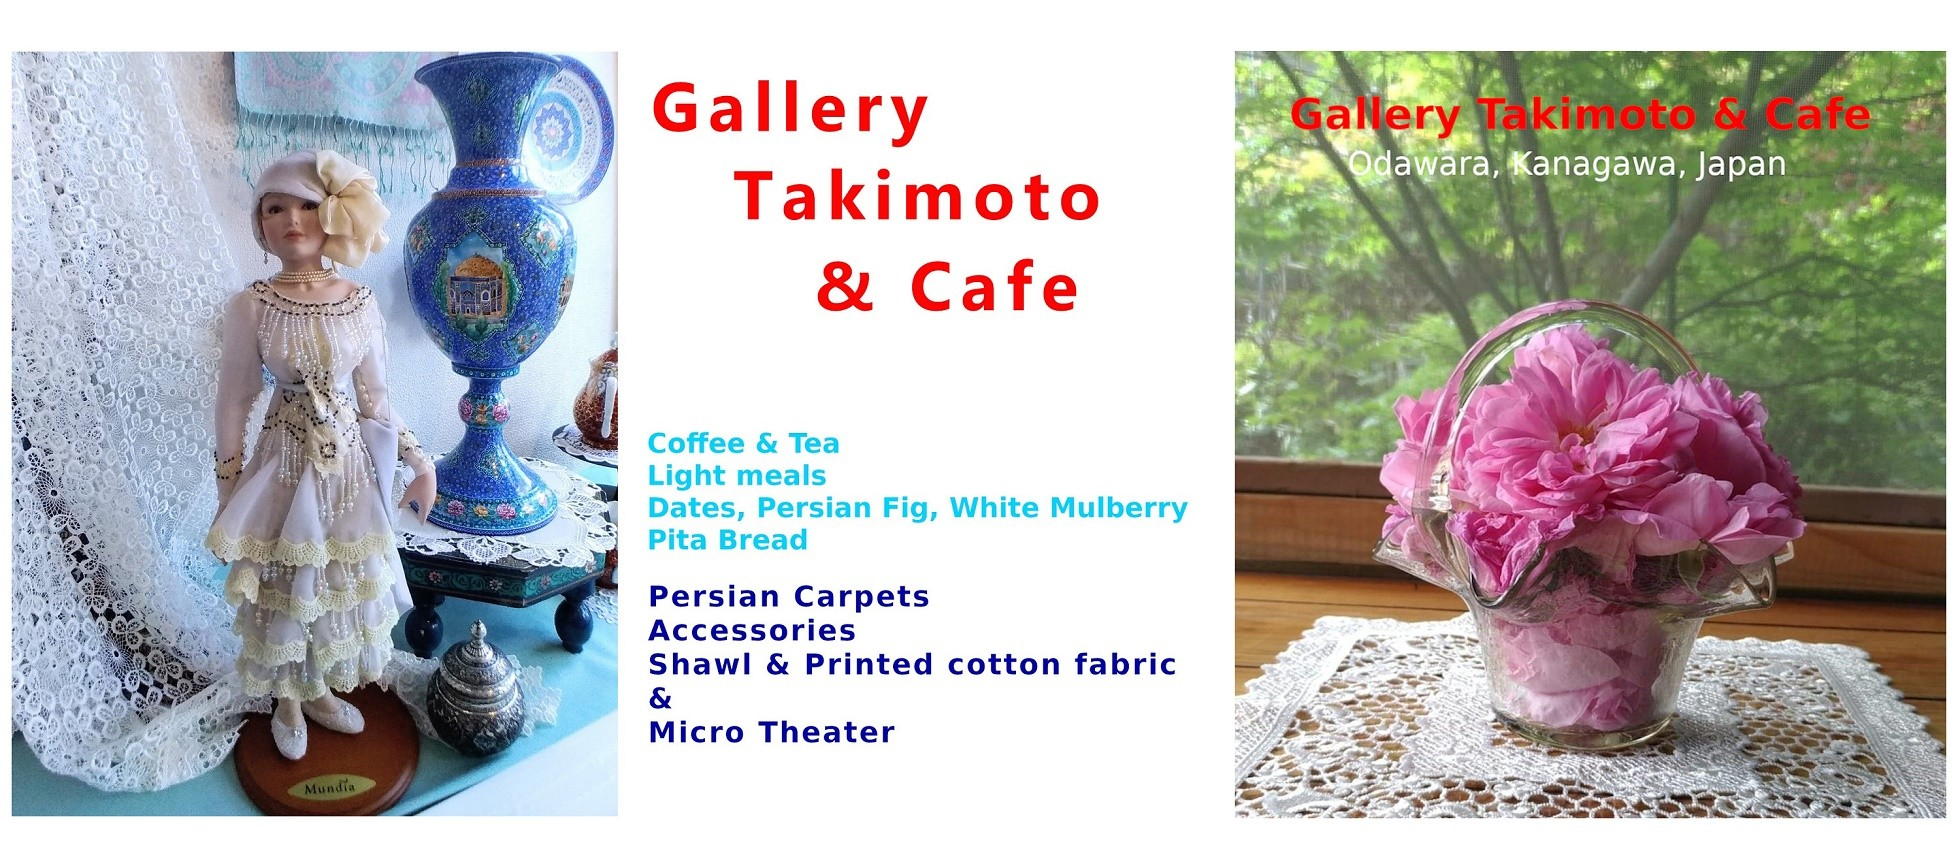 Gallery Takimoto and Cafe